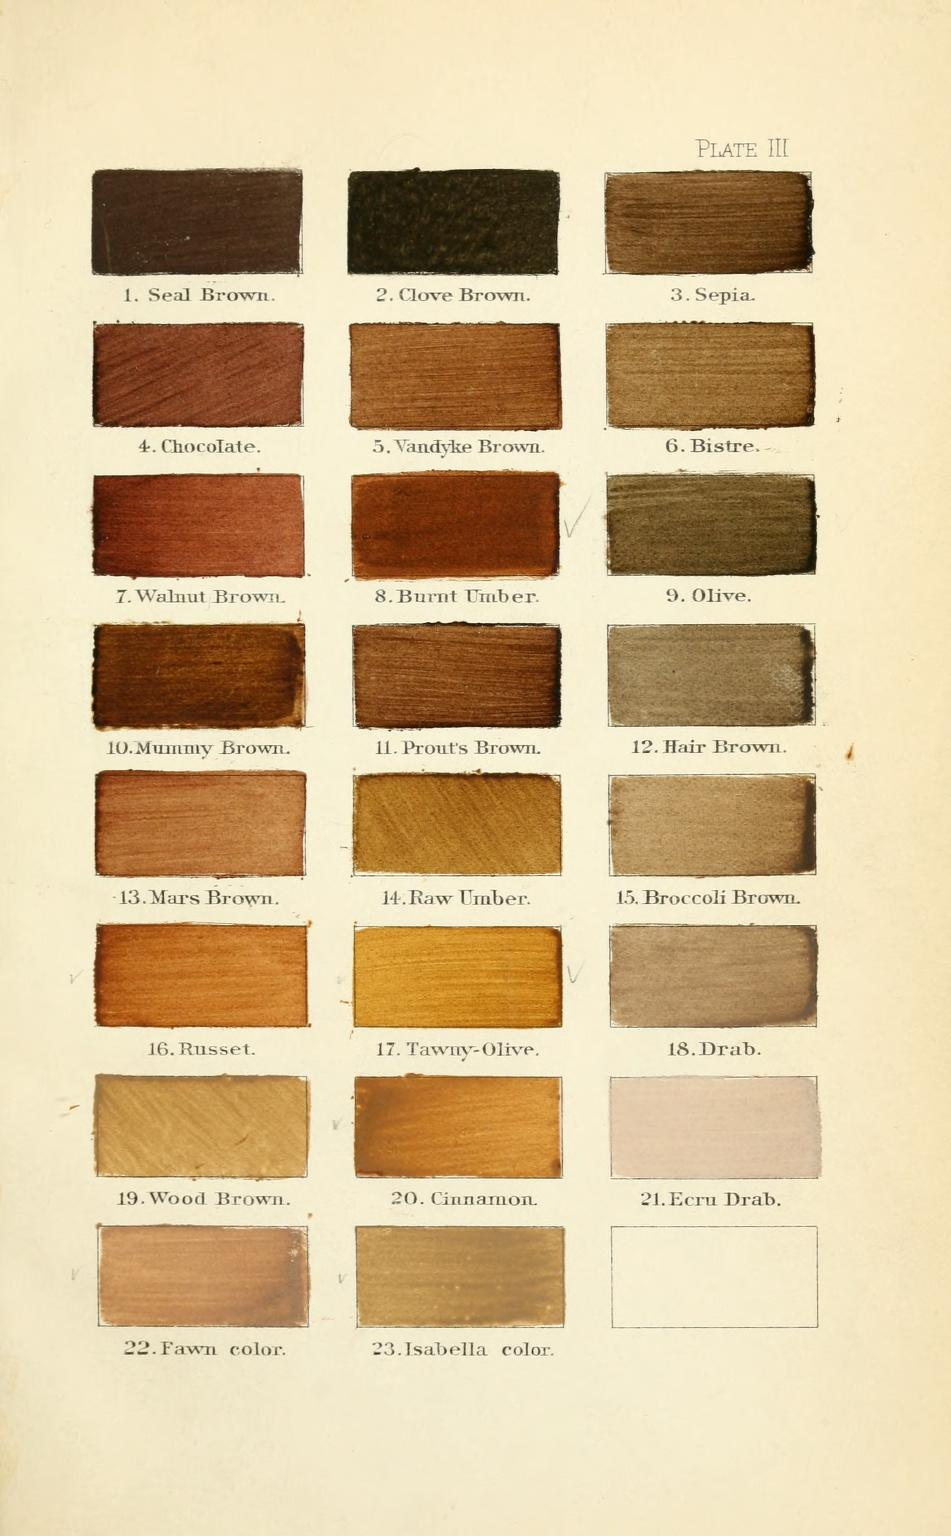 mummy brown - Wiktionary